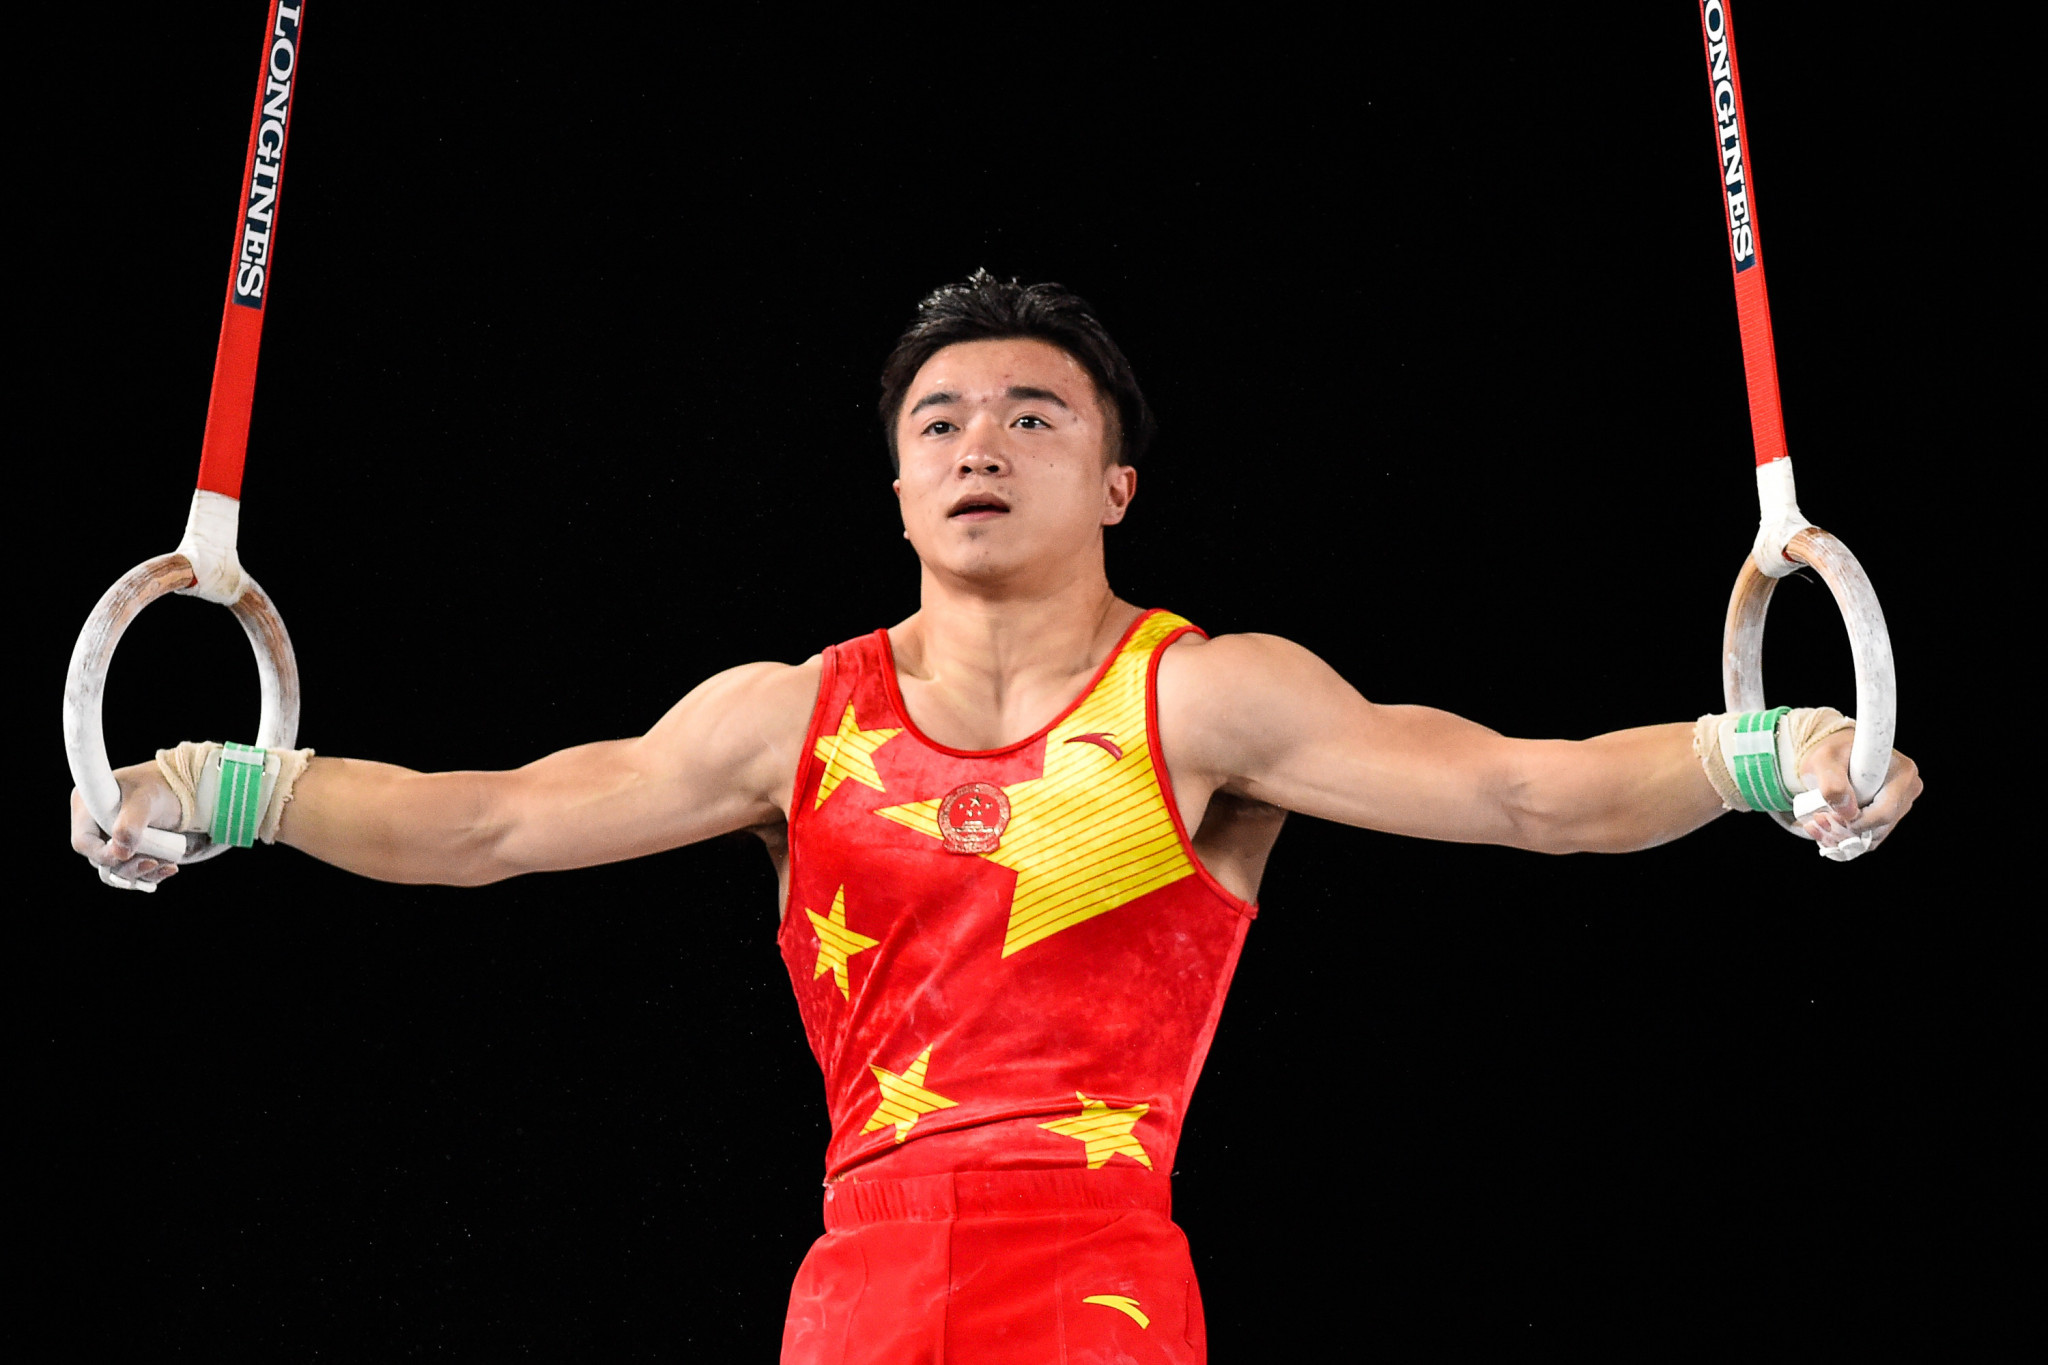 Yang Liu took gold in the rings event on a fruitful day for China ©Getty Images